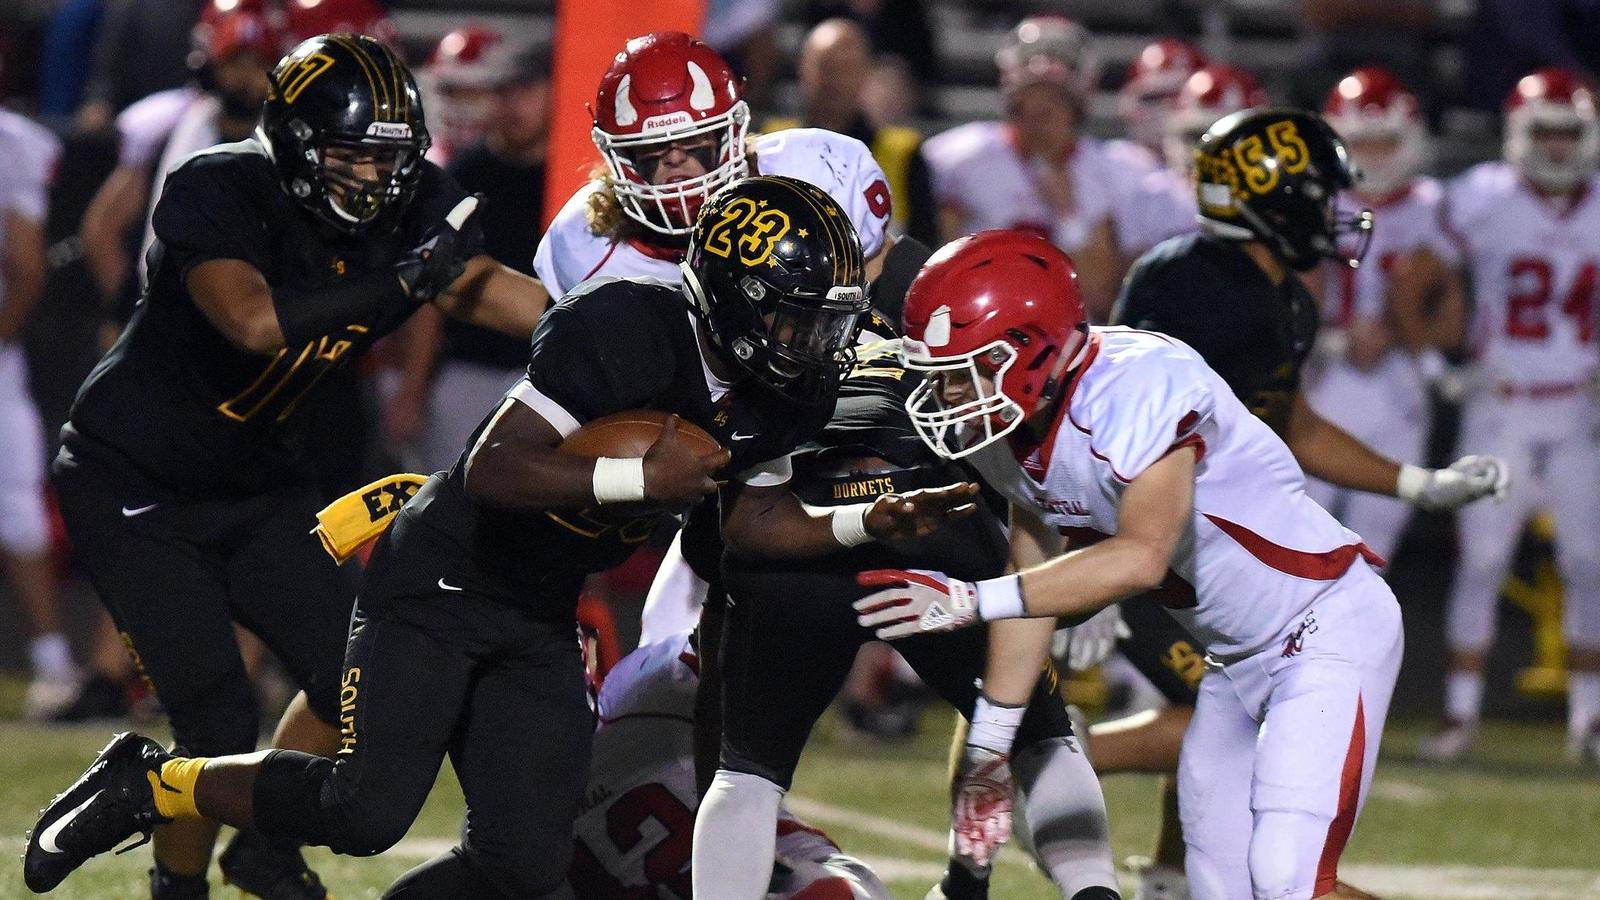 Illinois High School Association to offer concussion insurance in 2018-19